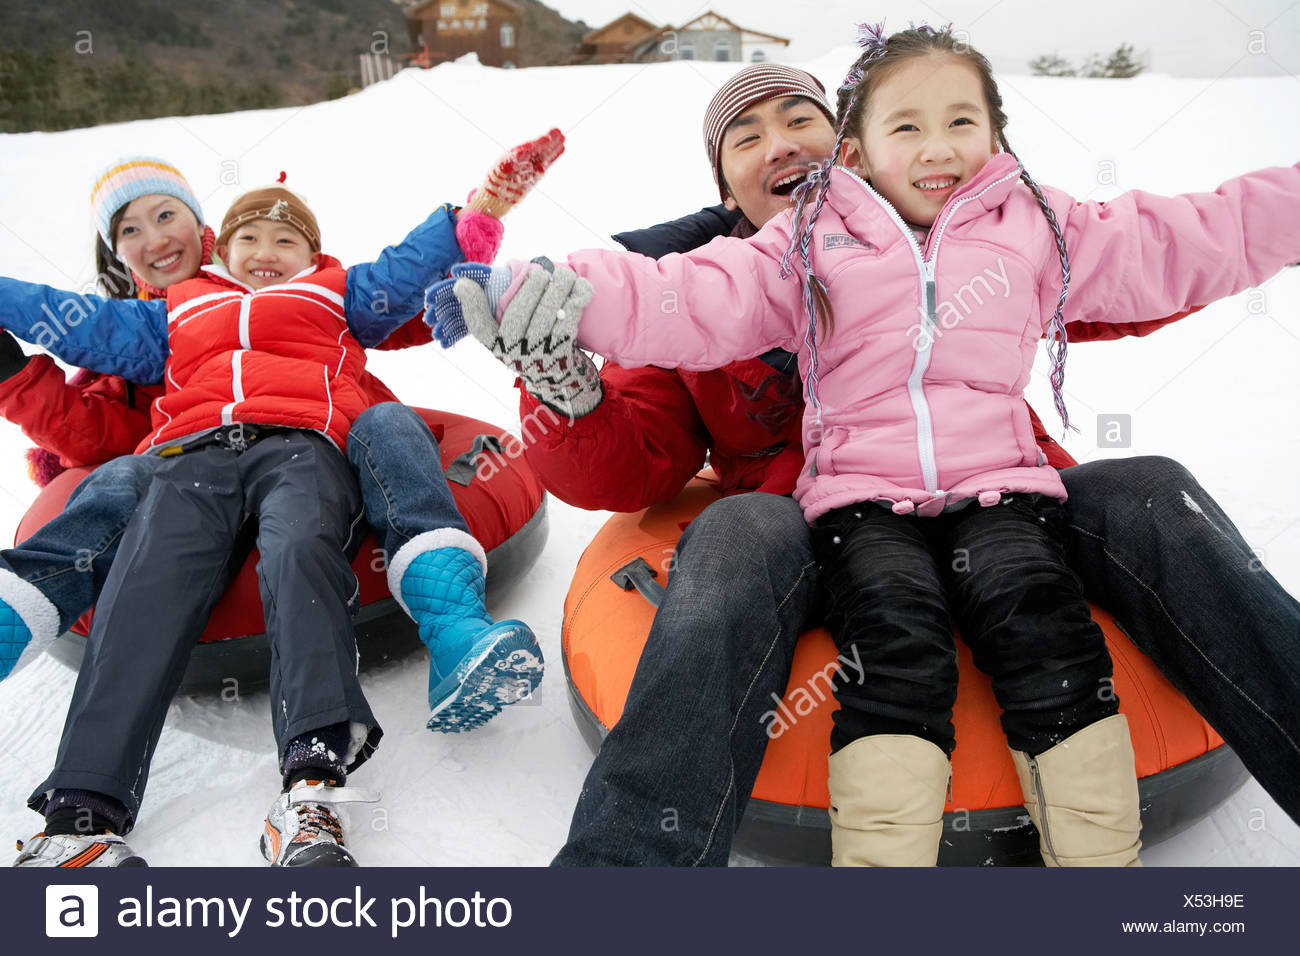 Parents And Children Riding On Inflatable Snow Tube Stock Photo